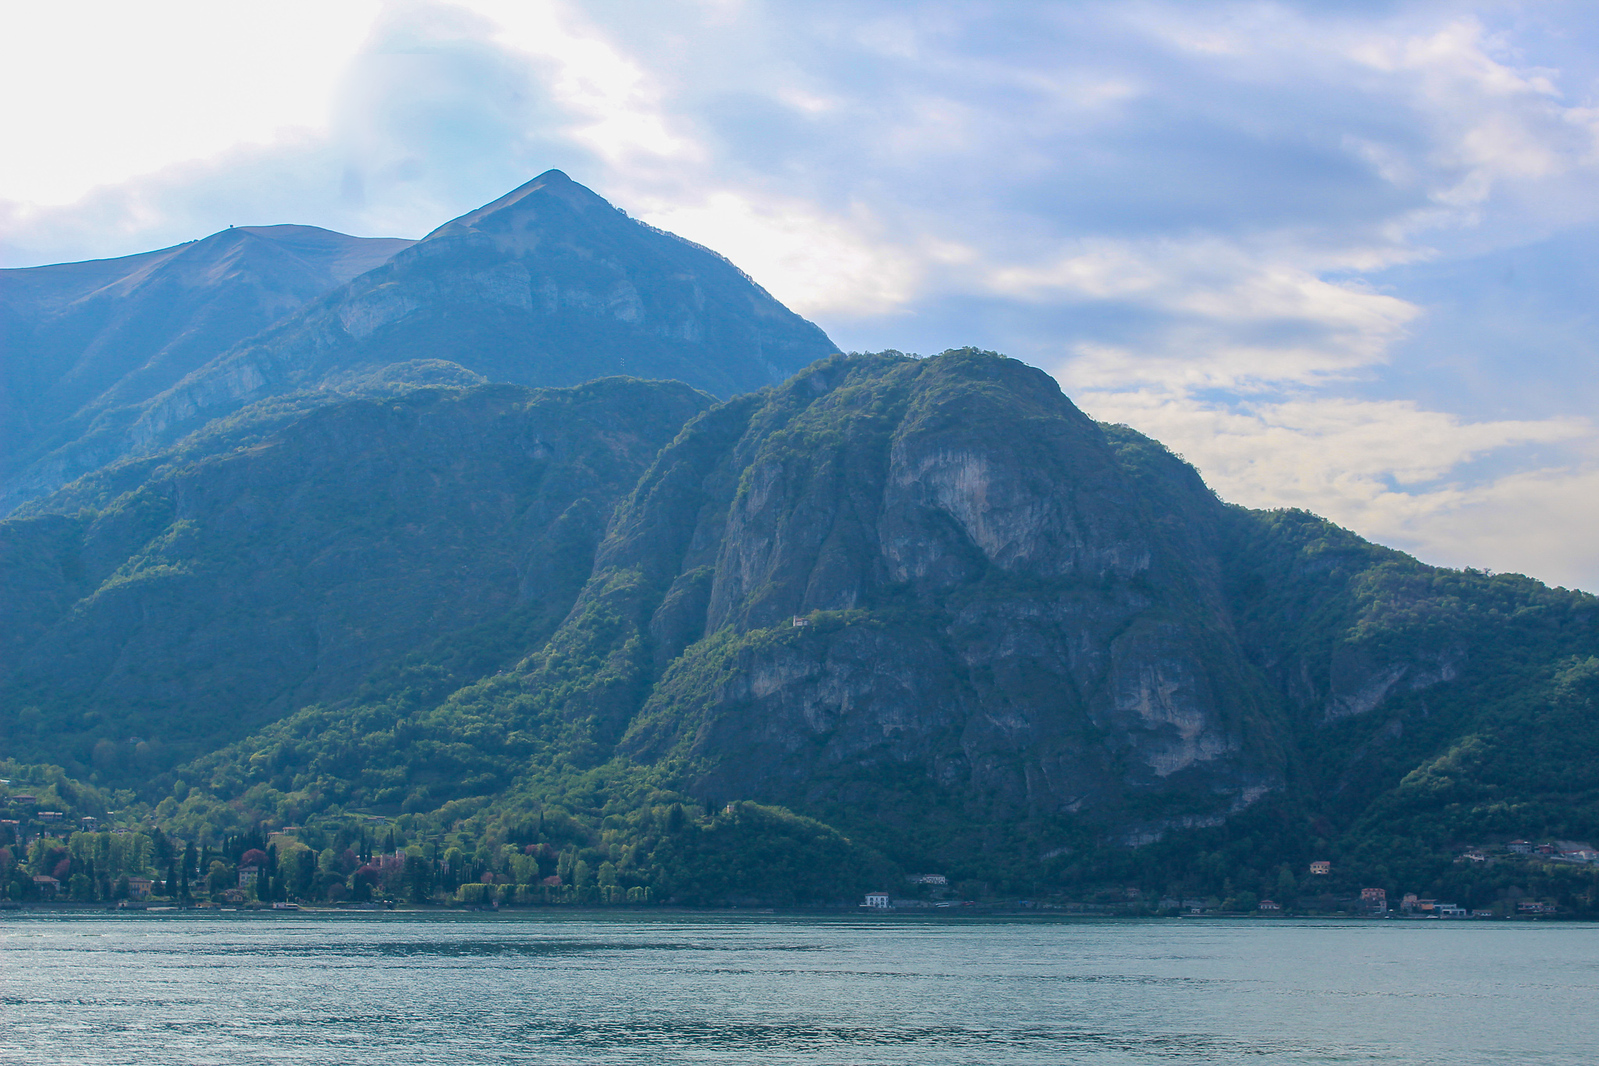 solo travel italy: one tip is to see the nature like at lake como